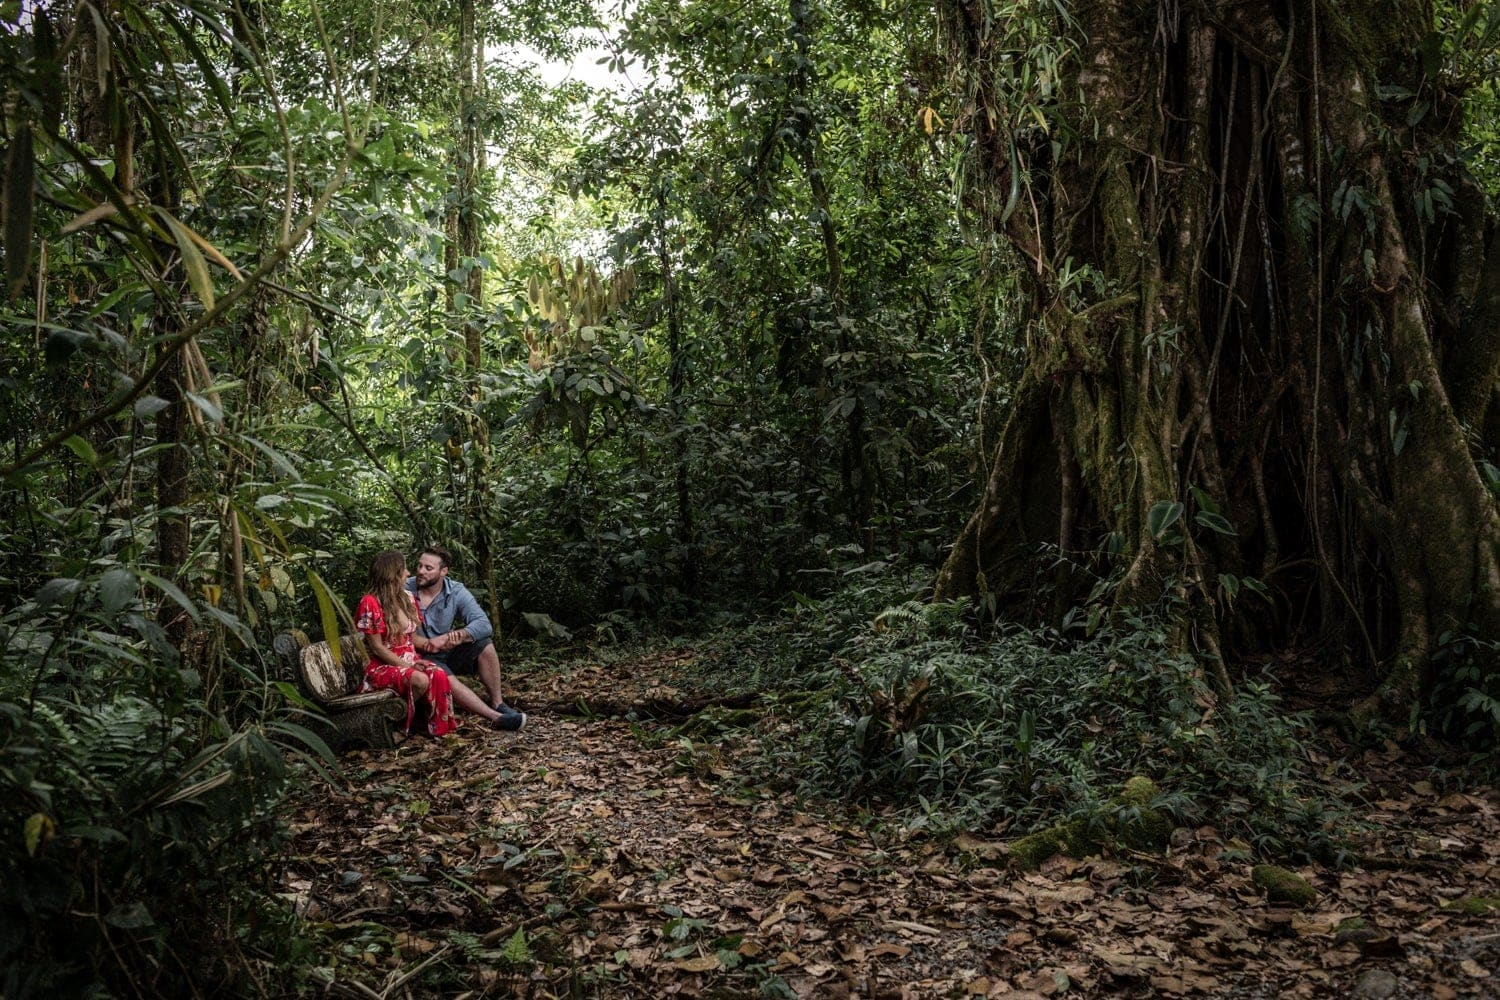 Lovers sit on bench in magical cloud forest engagement photo.